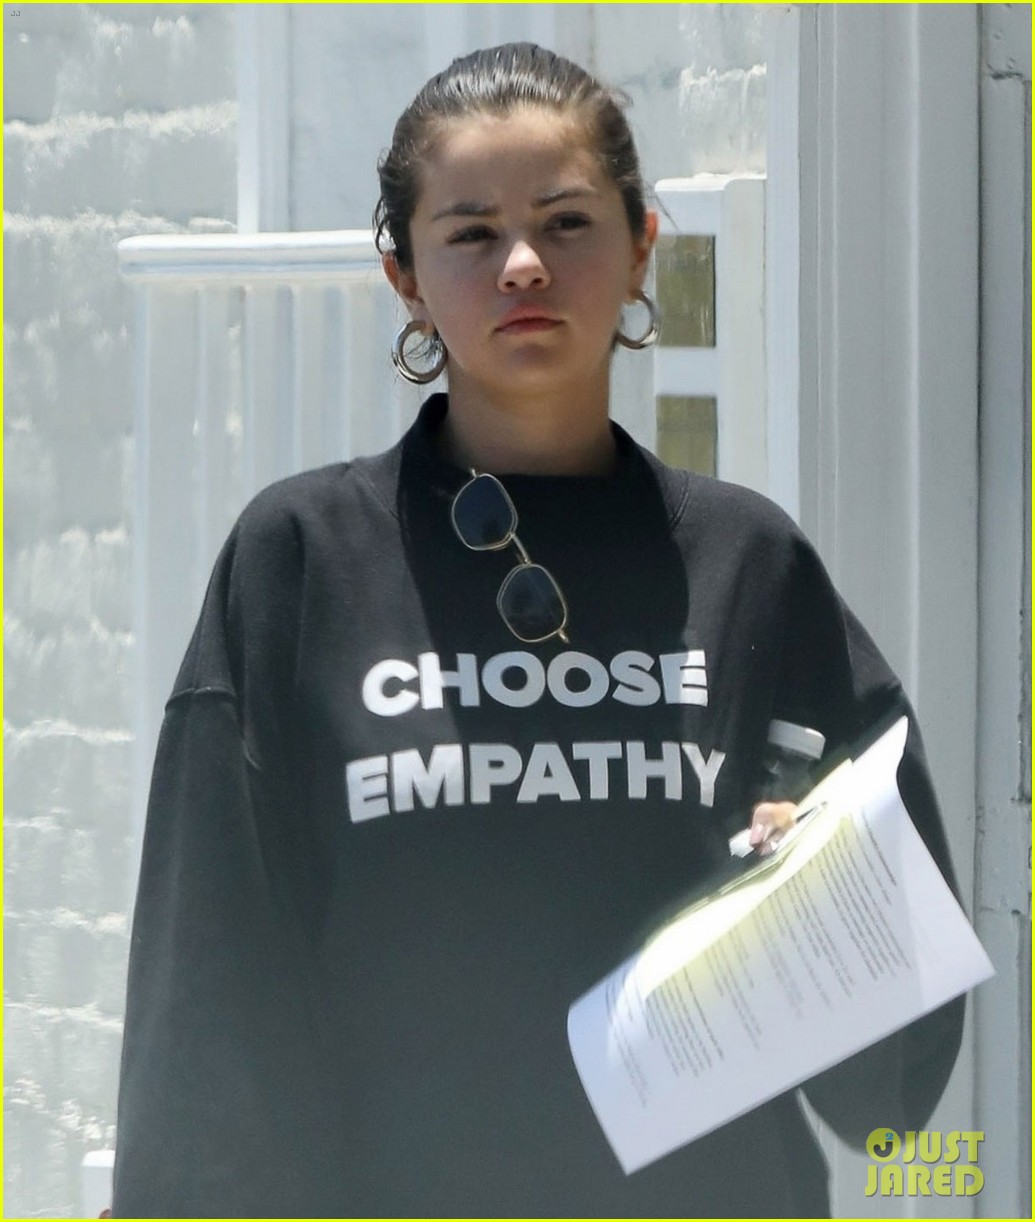 selena gomez choose empathy sweatshirt 02